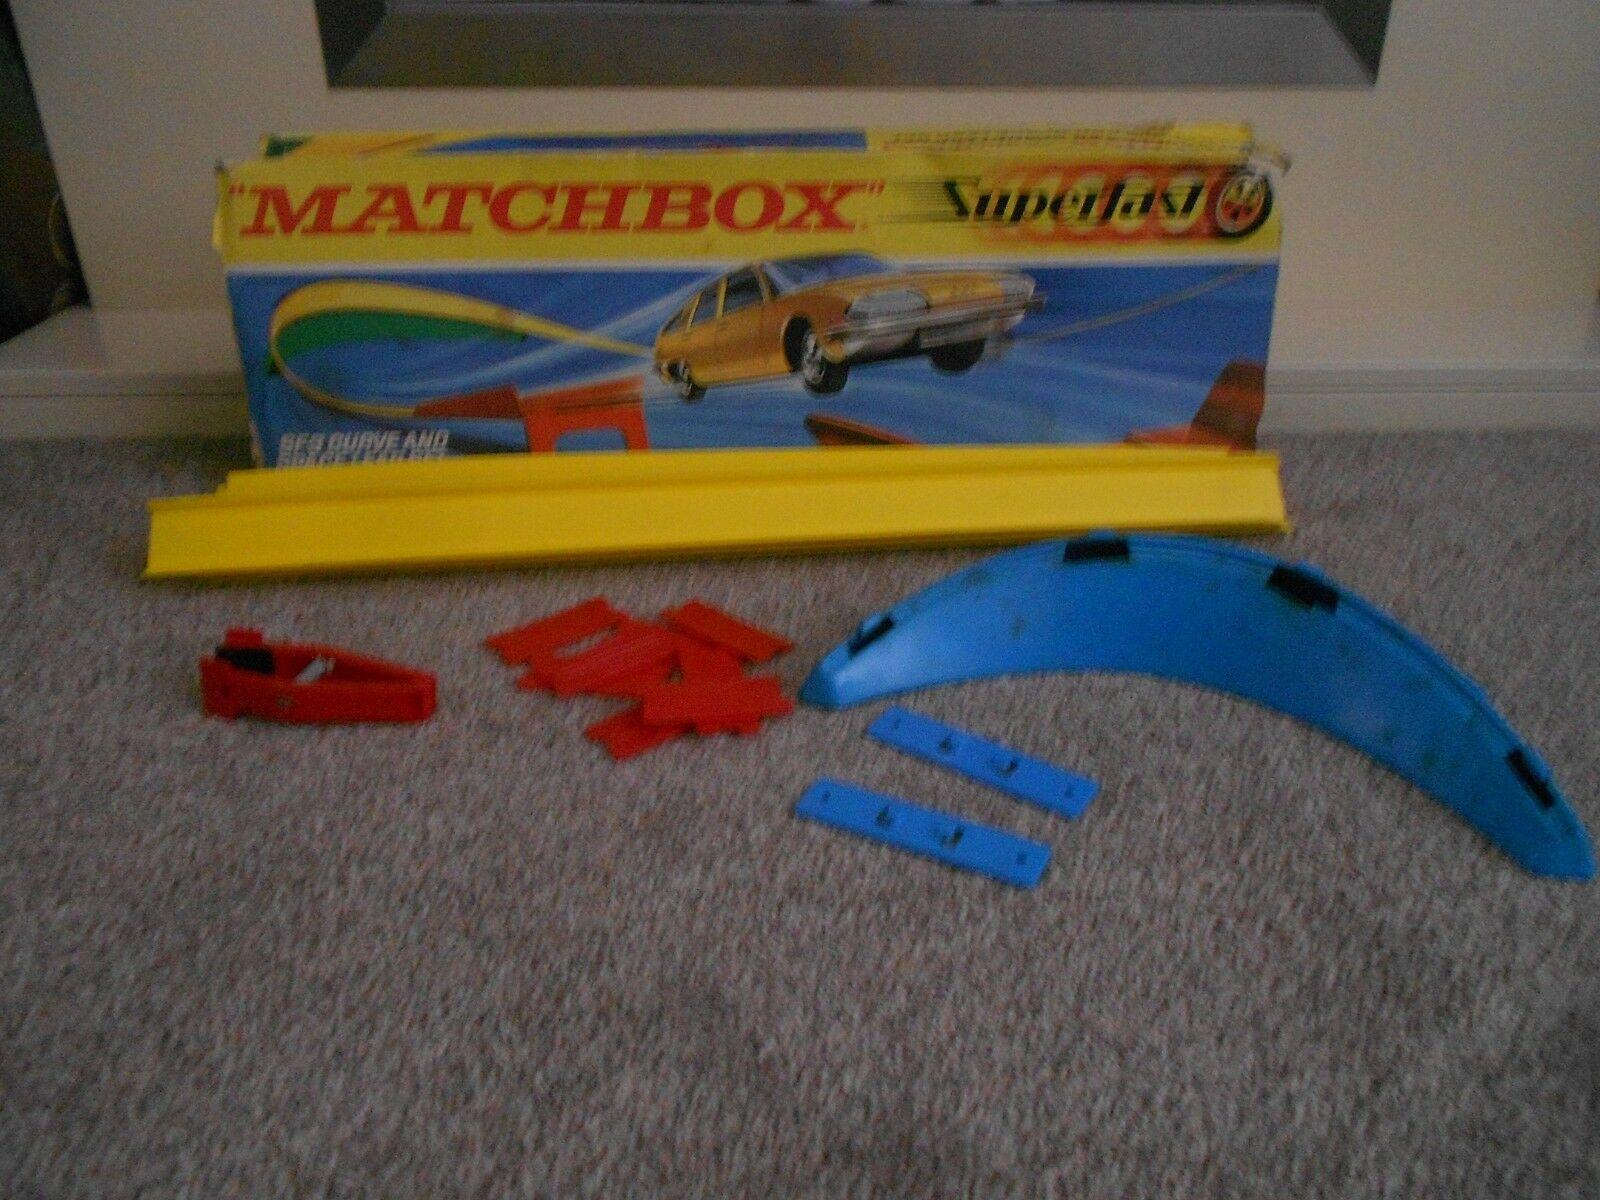 Vintage Matchbox Superfast SF-3 Curve And Space Leap Set